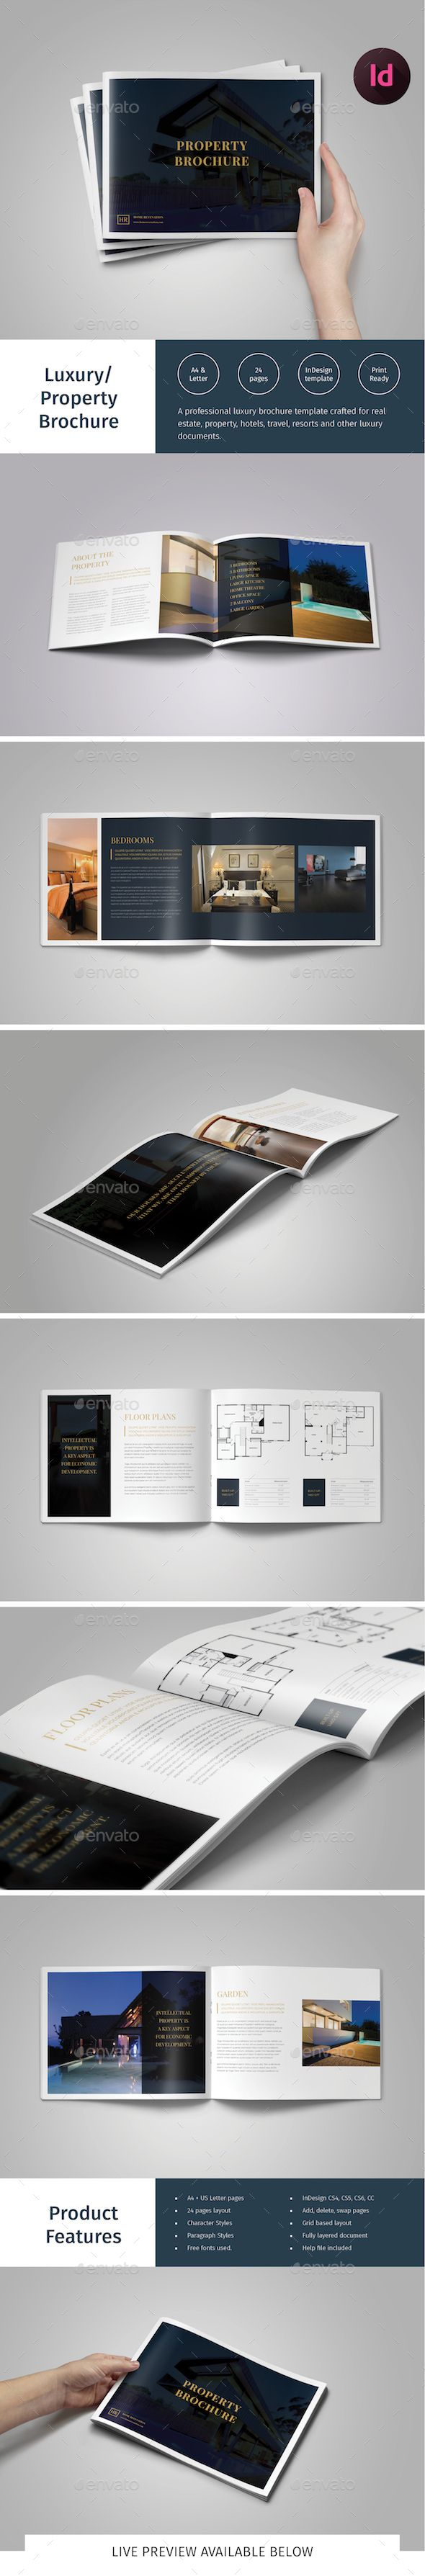 Best Images About Real Estate Brochures On